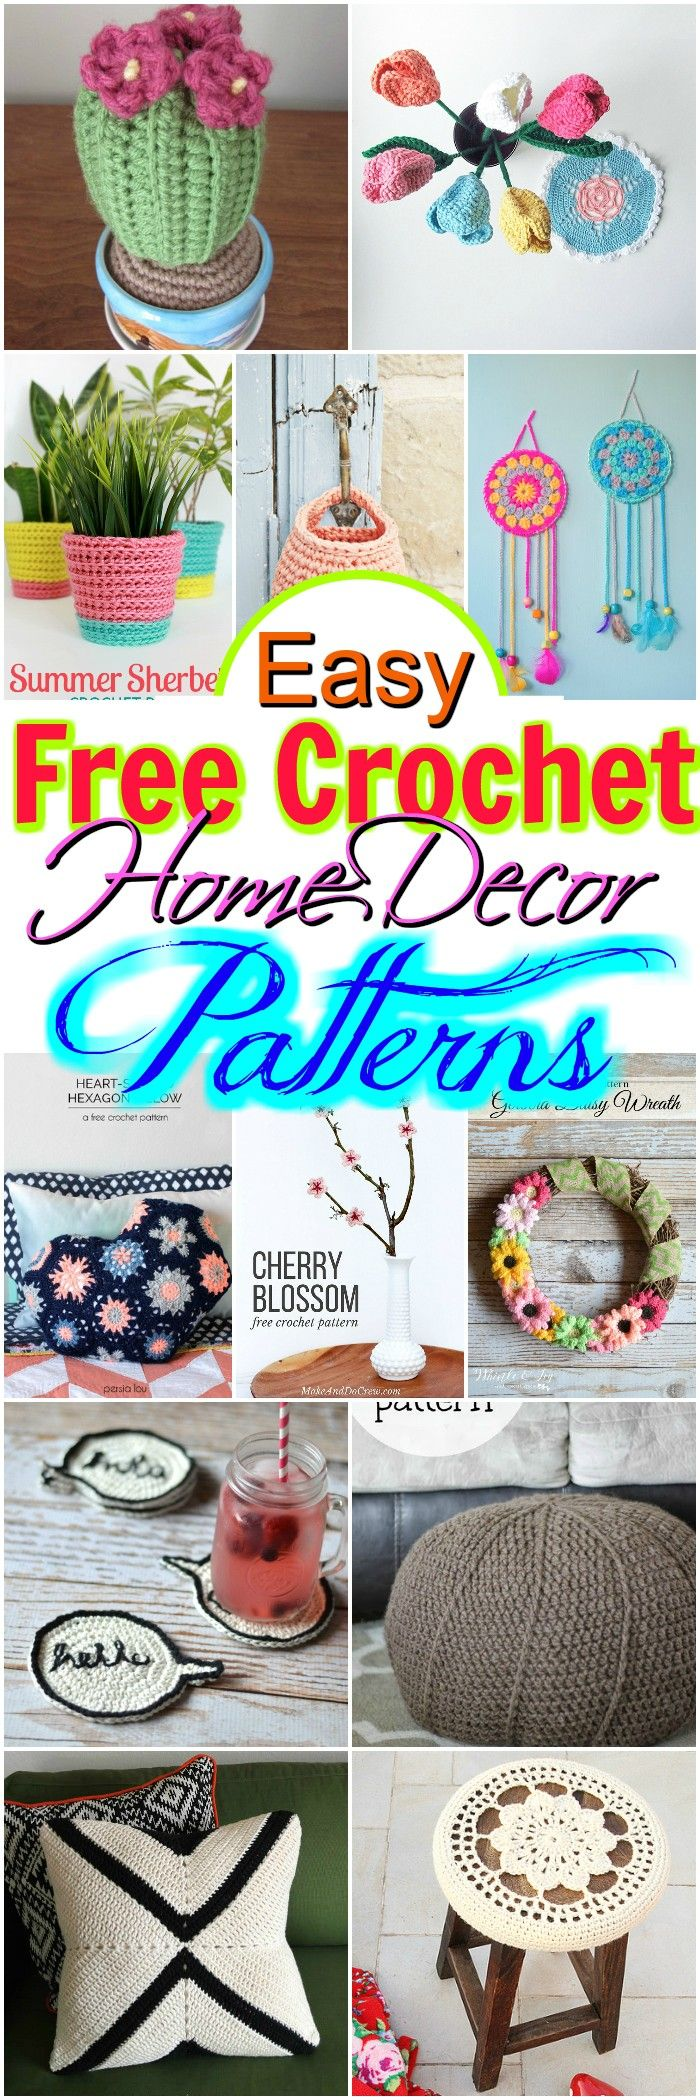 we have brought some inspirational and interesting free #crochet #home #decor patterns for you.